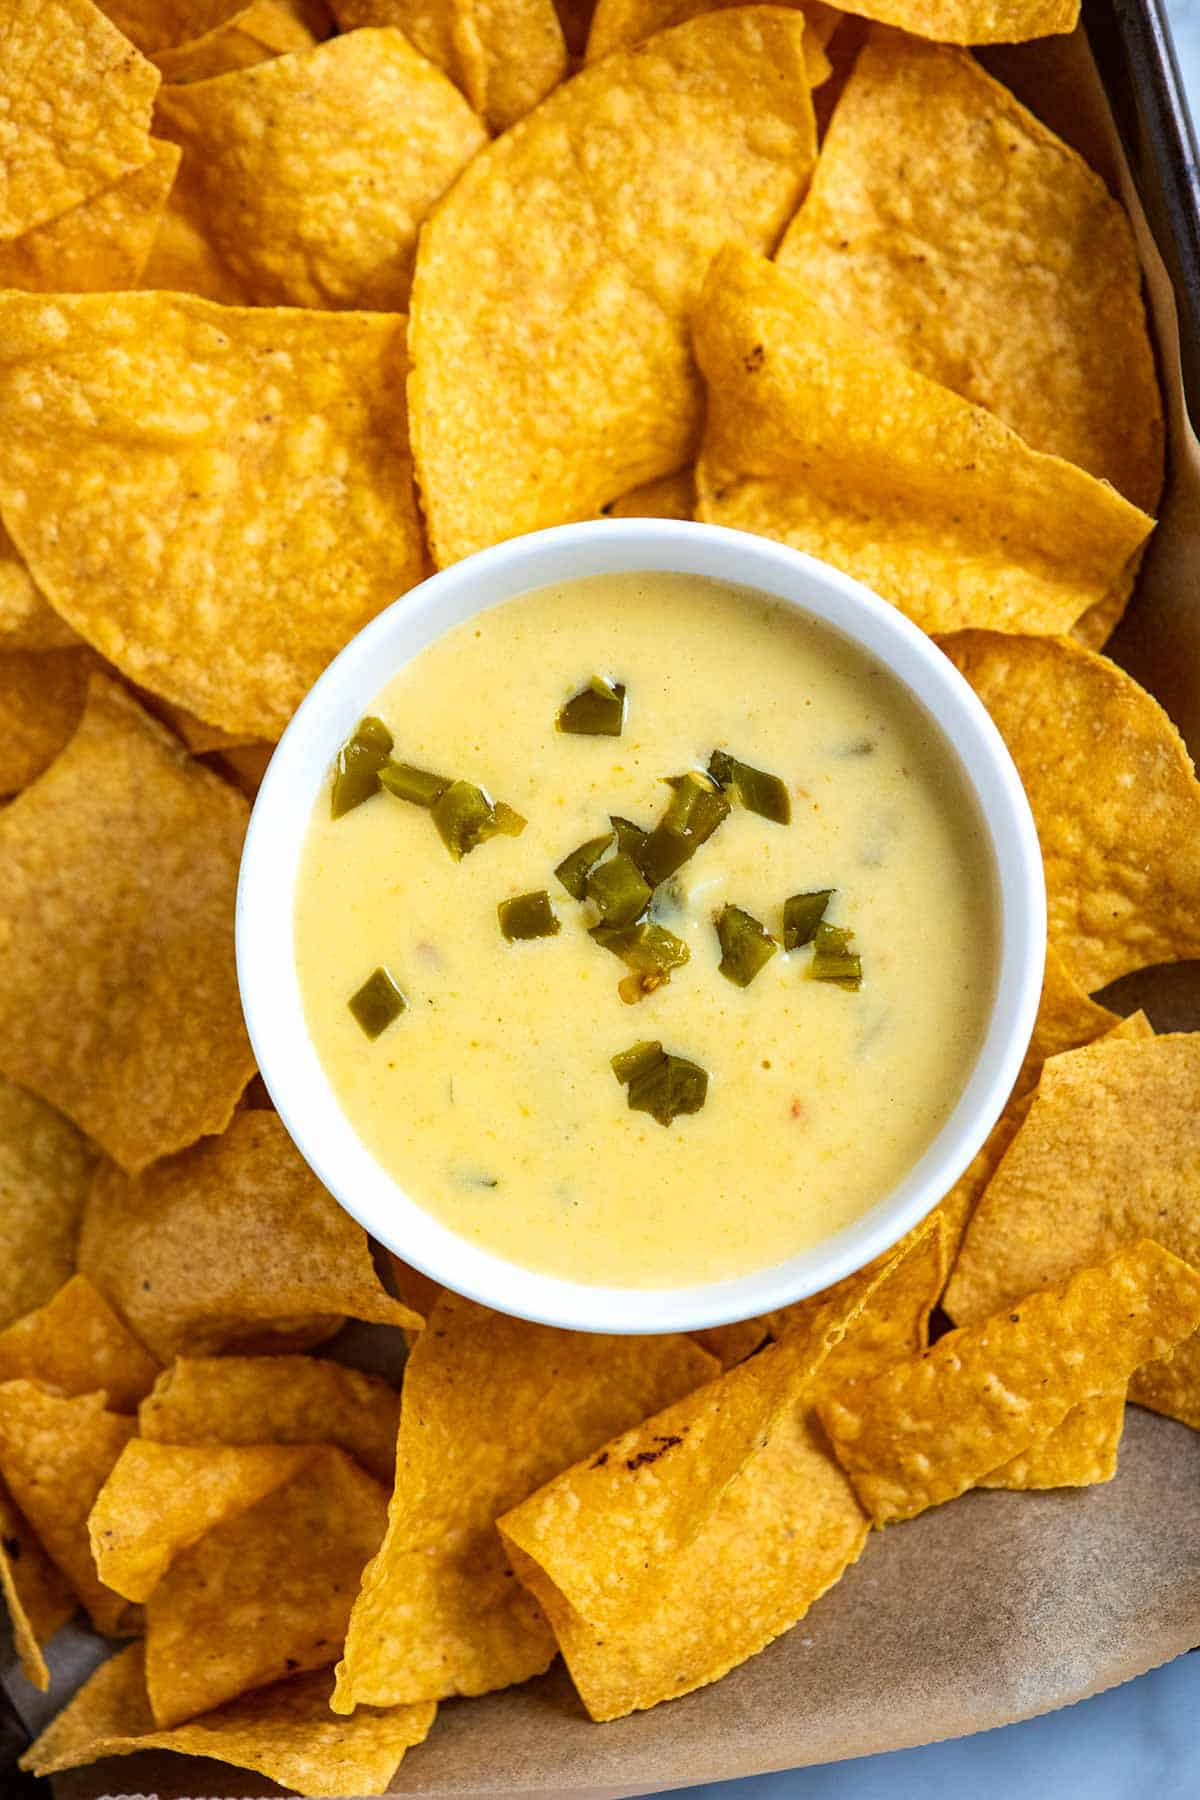 Homemade queso dip with tortilla chips